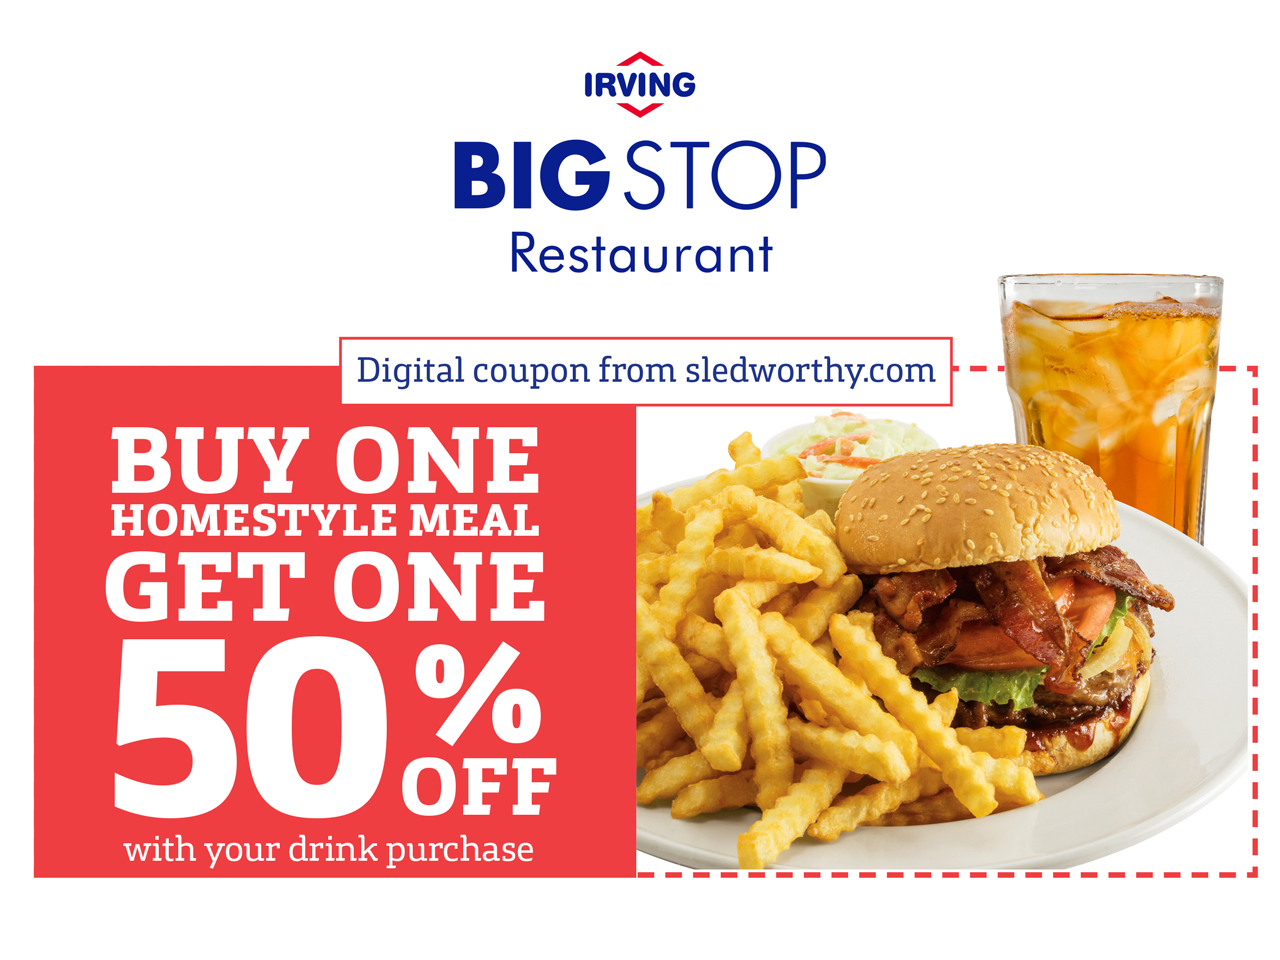 Buy one homestyle meal, get one 50% off with your drink purchase. Digital coupon from sledworthy.com.  See related files for all jobs related to this campaign.